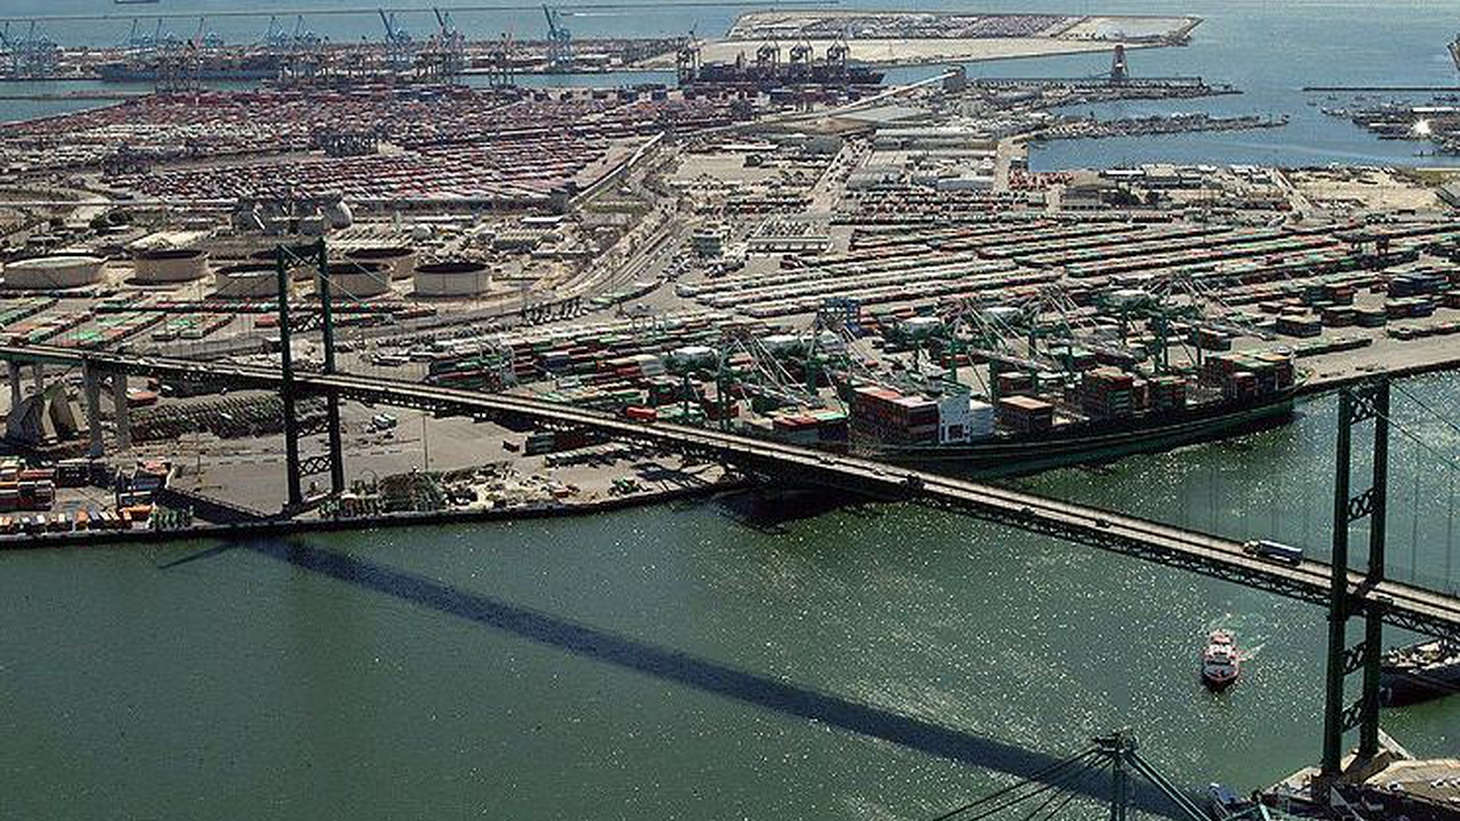 It's the economy versus the health of people living near the Port of Los Angeles who are opposed to a massive new facility to be built there.